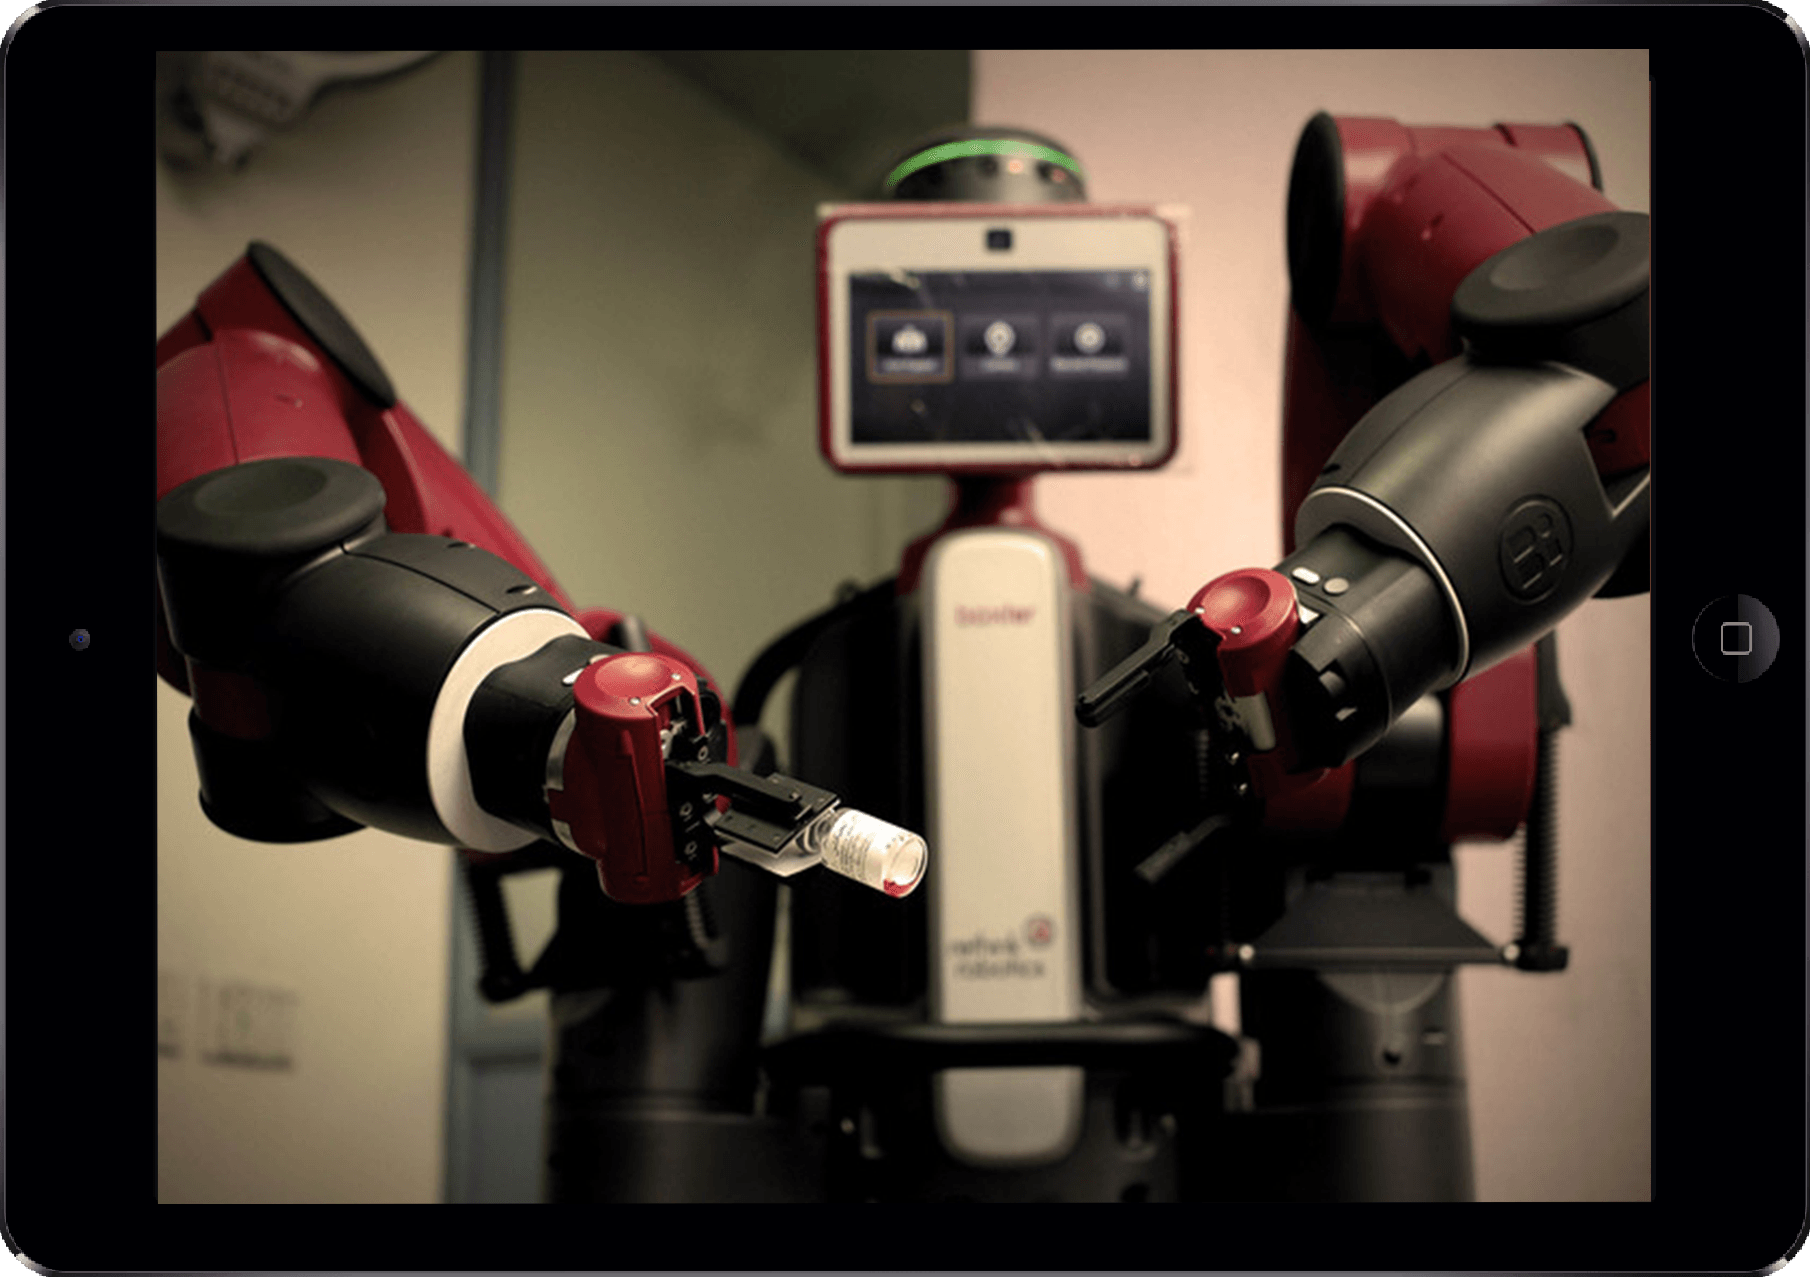 baxter robot software